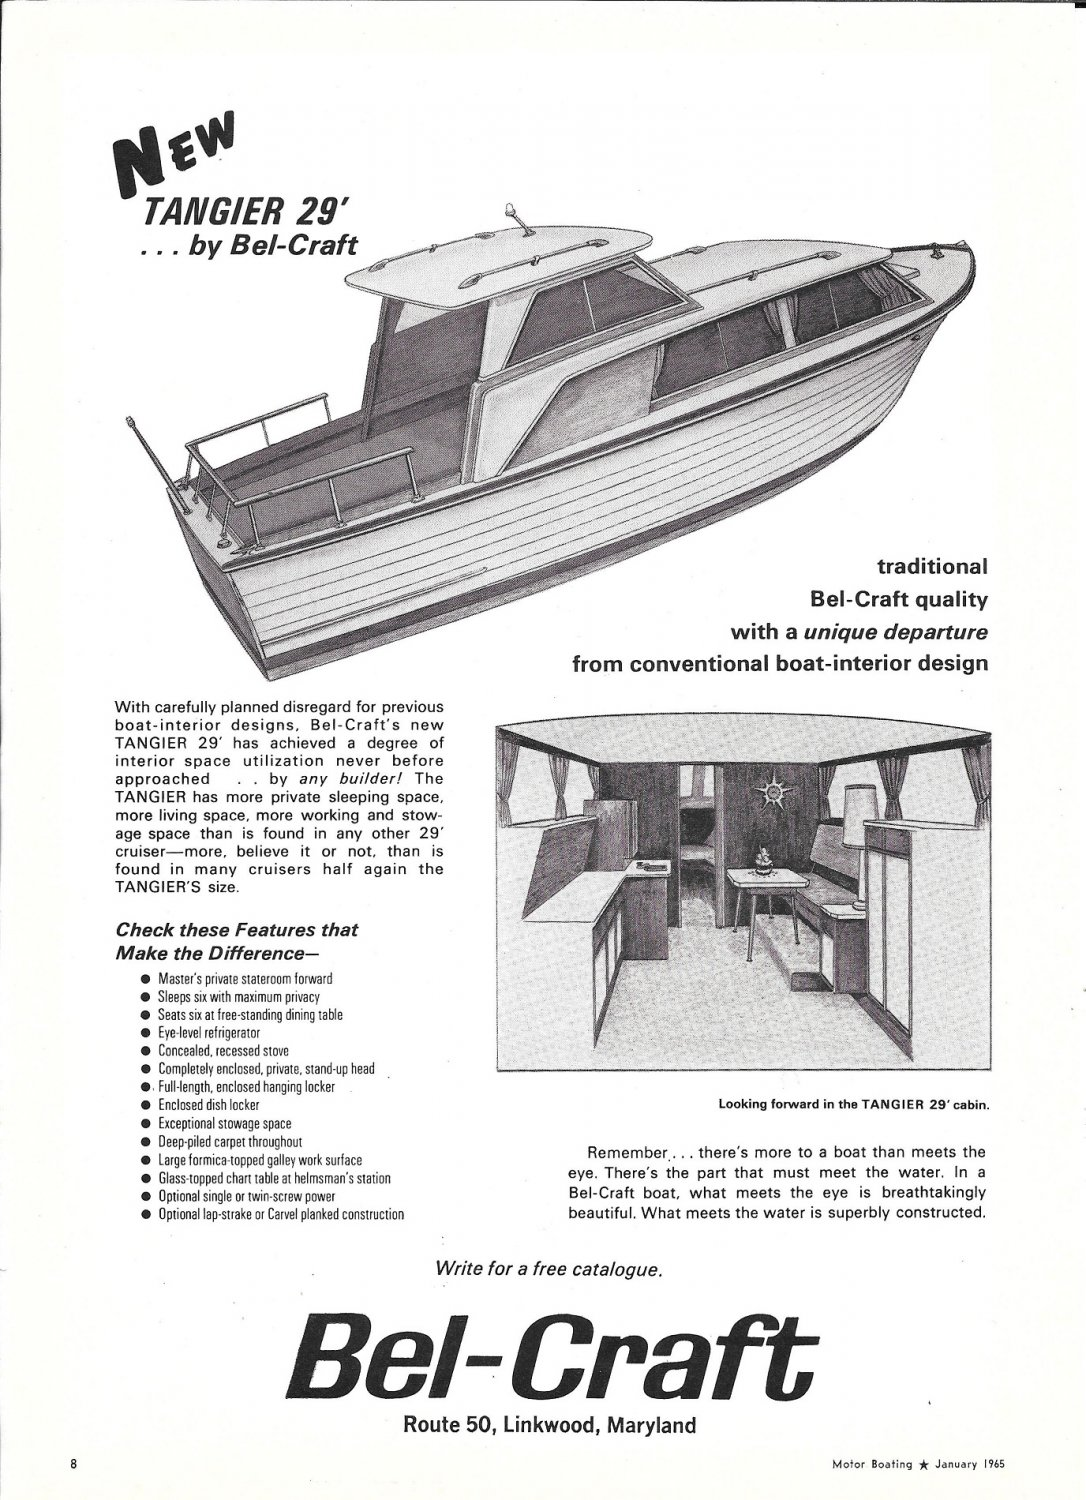 1965 Bel- Craft Tangier 29' Boat Ad- Drawing